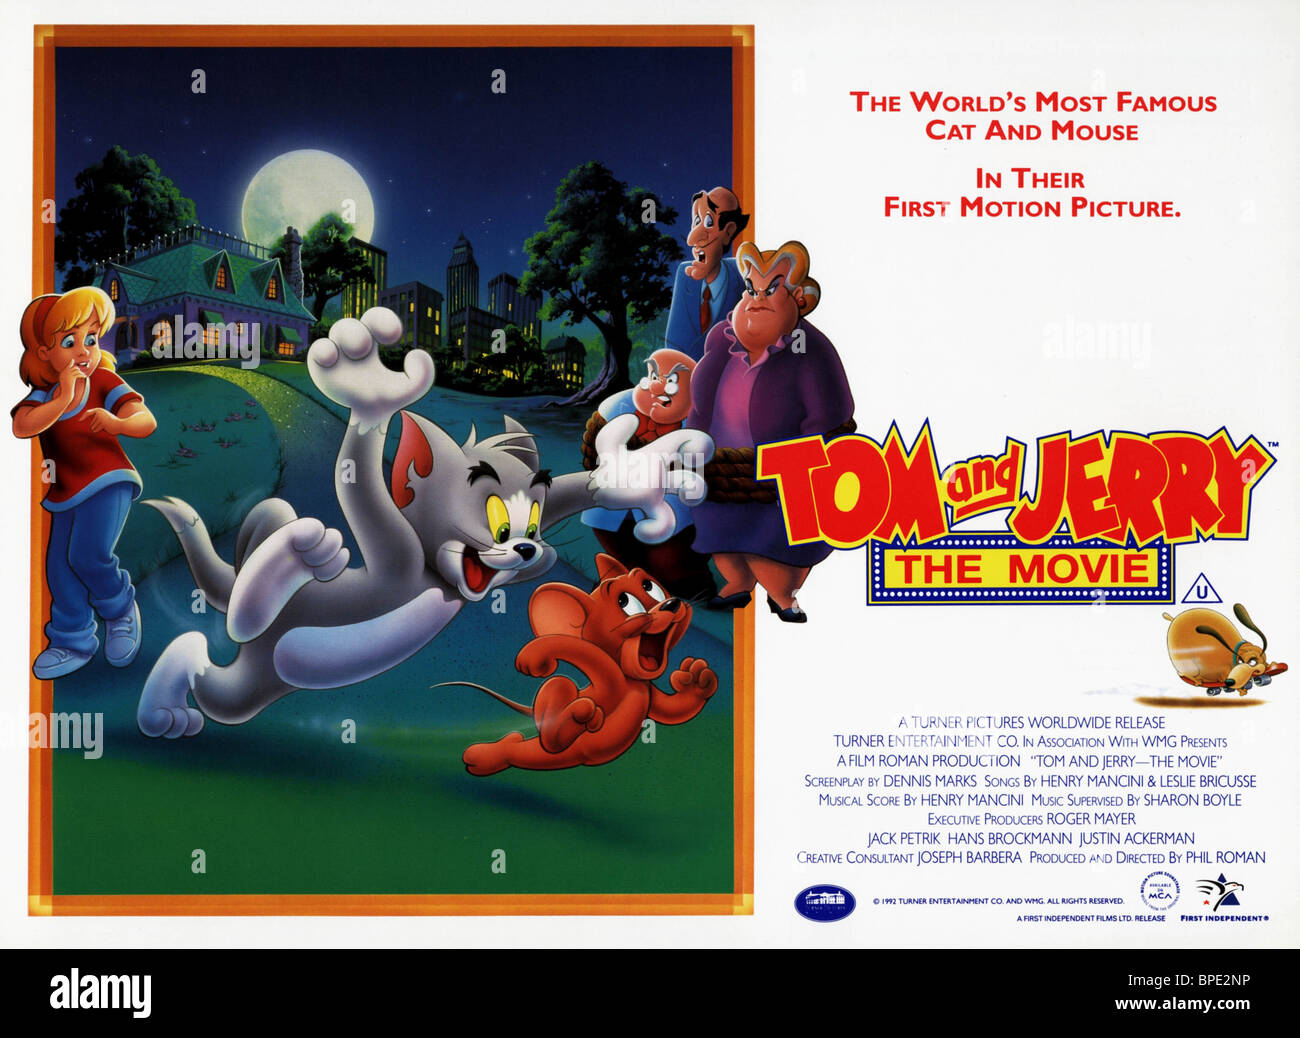 TOM THE CAT & JERRY THE MOUSE TOM & JERRY : THE MOVIE (1992)